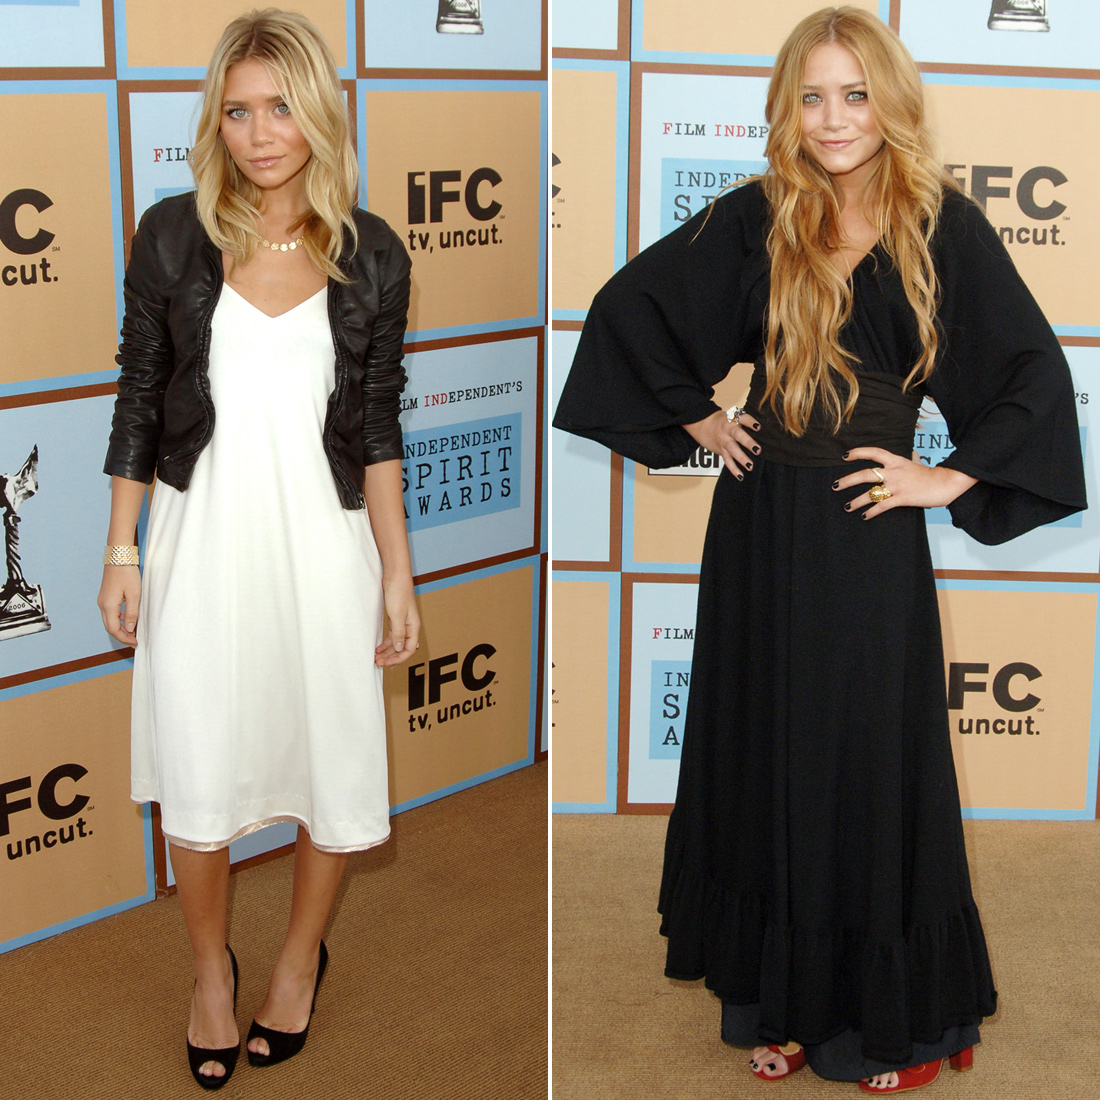 Twinning combo: For the 2006 Independent Spirit Awards, Mary-Kate and Ashley chose easy, breezy silhouettes in staple hues.  Ashley paired her white slip dress with a shrunken leather jacket and black peep-toes. Mary-Kate donned a draping black gown with full sleeves and red peep-toe pumps.